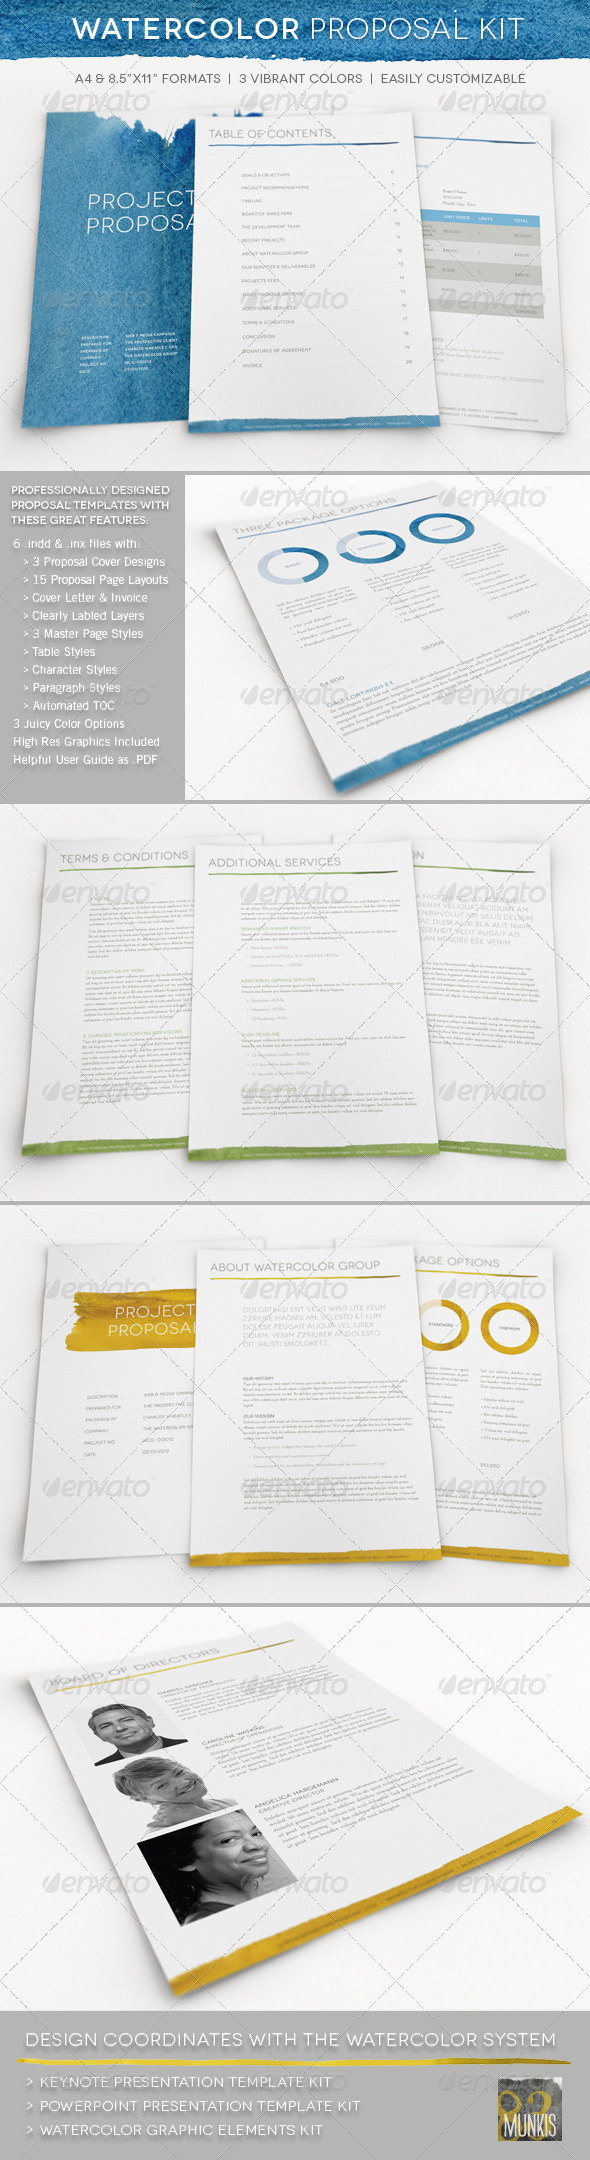 Watercolor Professional Proposal Kit  - Proposals & Invoices Stationery